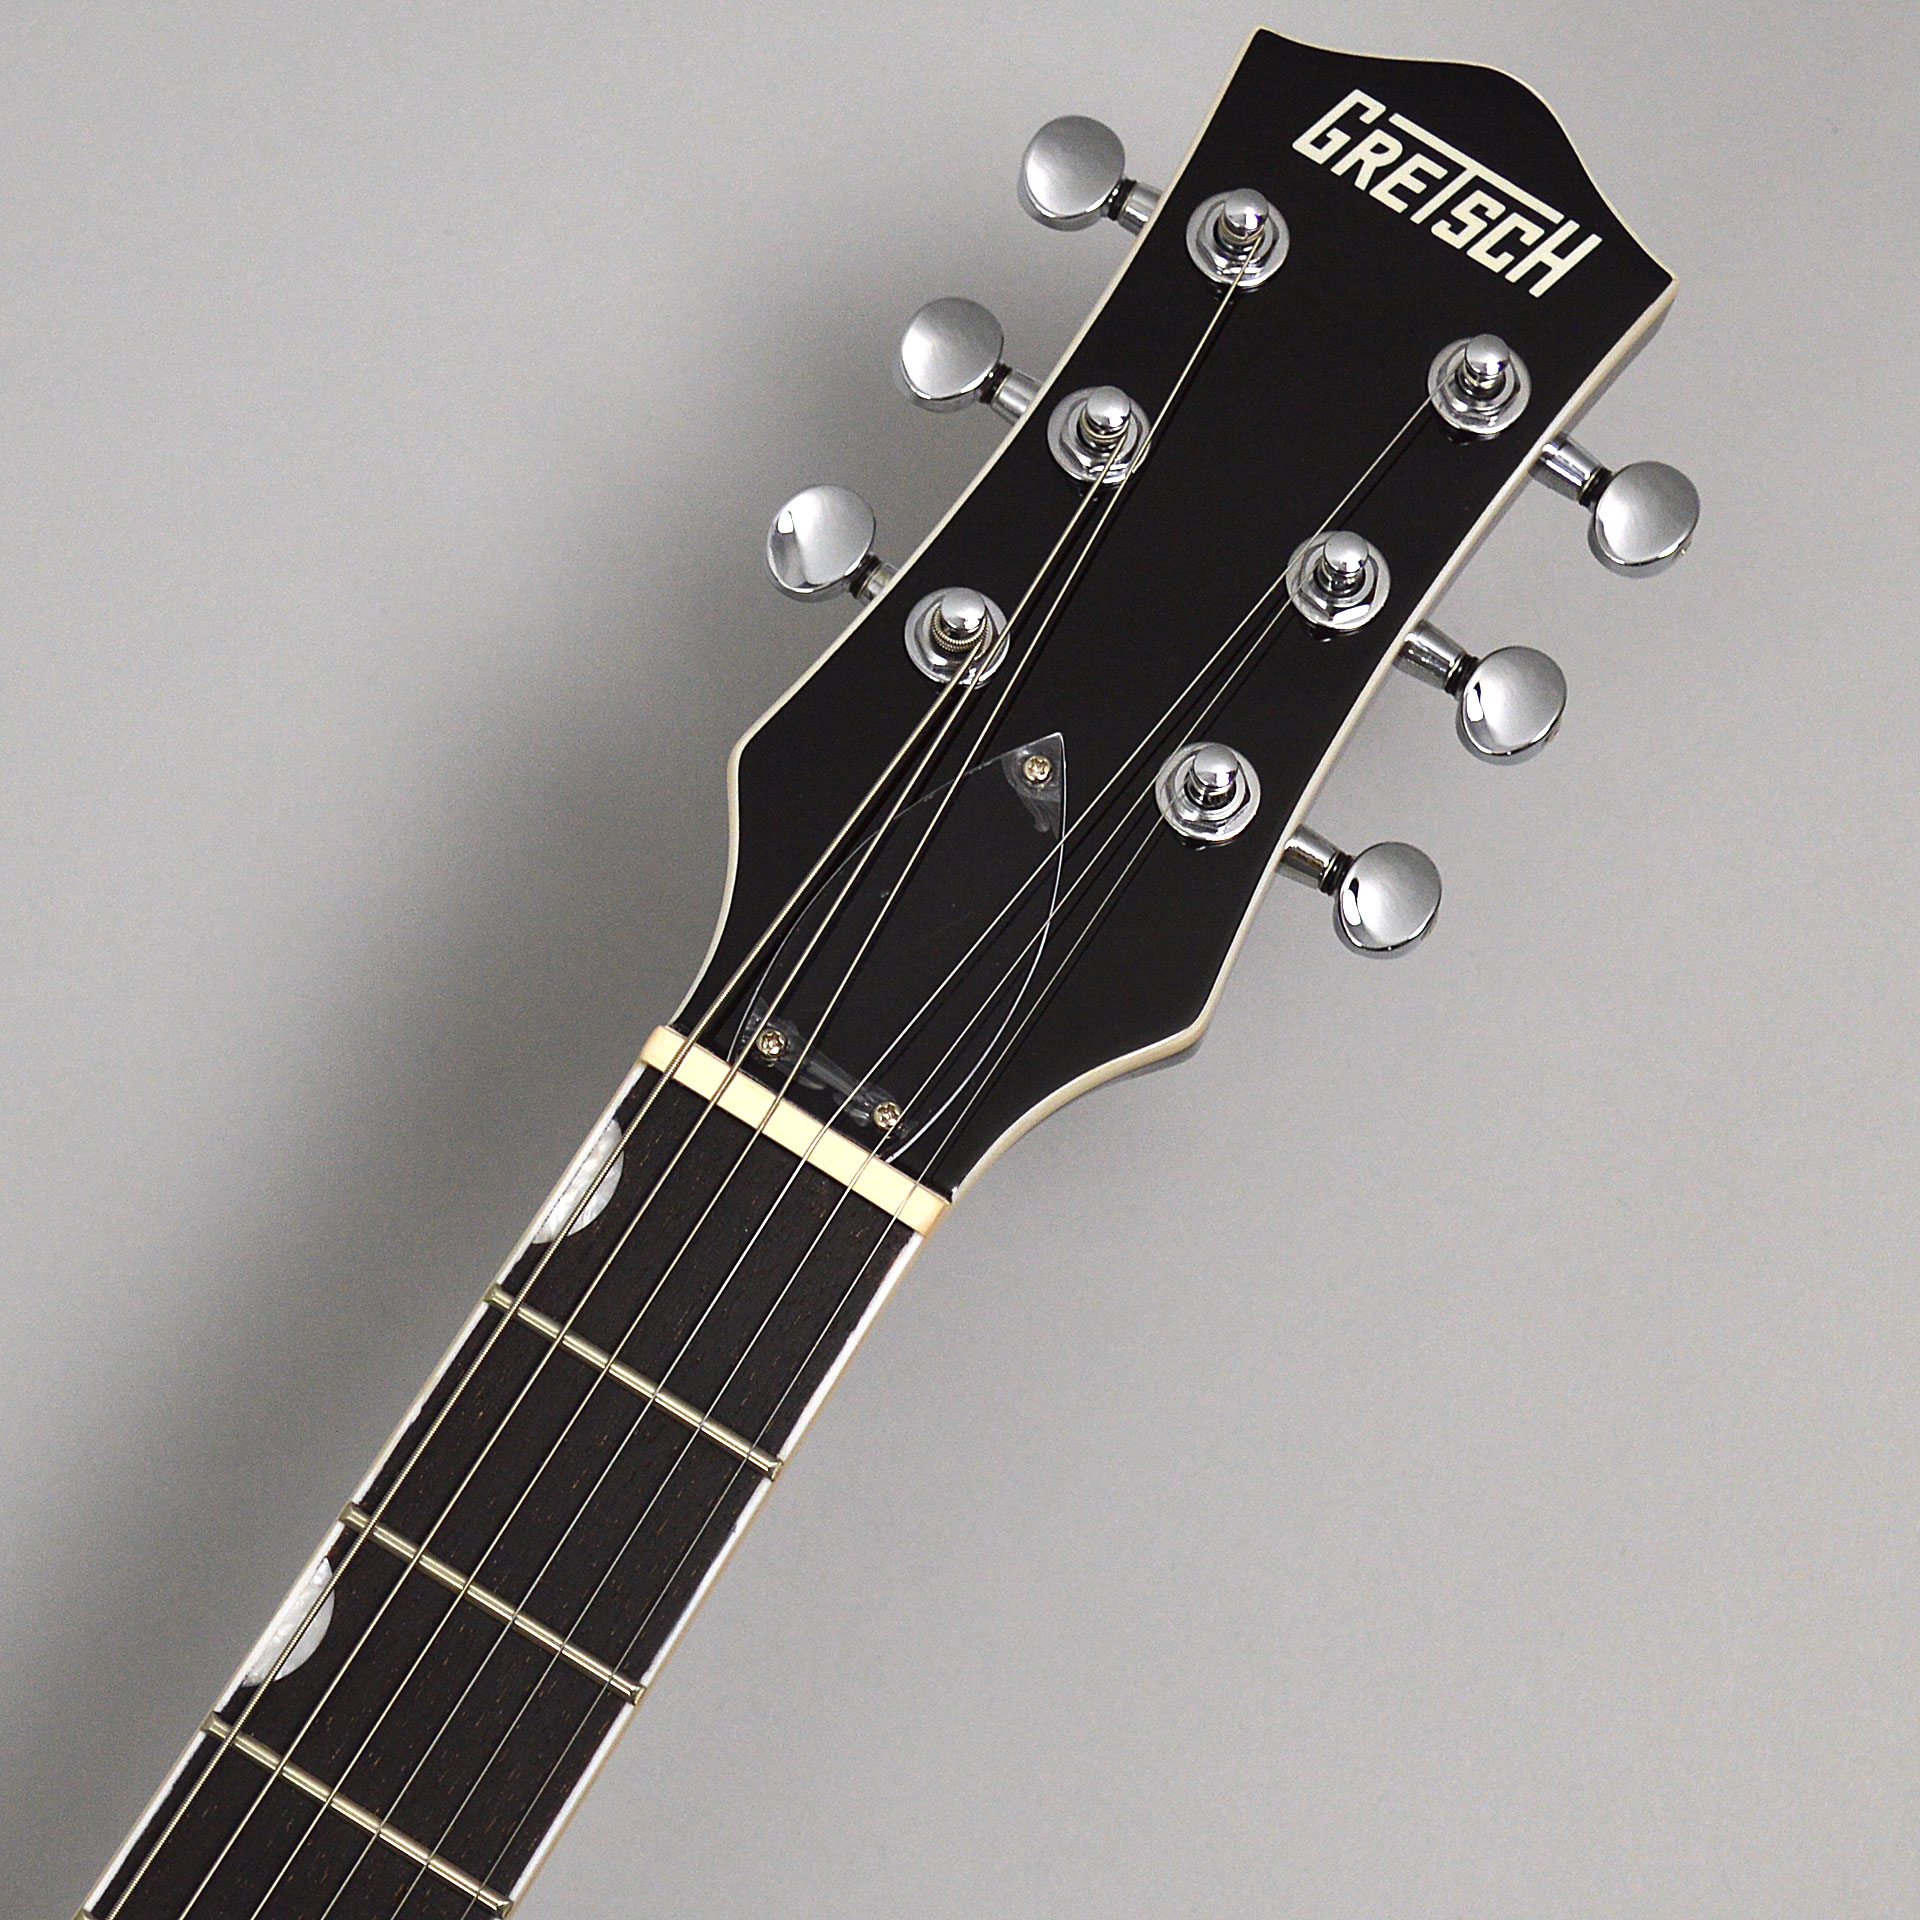 G5230T Electromatic Jet FT Single-Cut with Bigsby Blackのヘッド画像